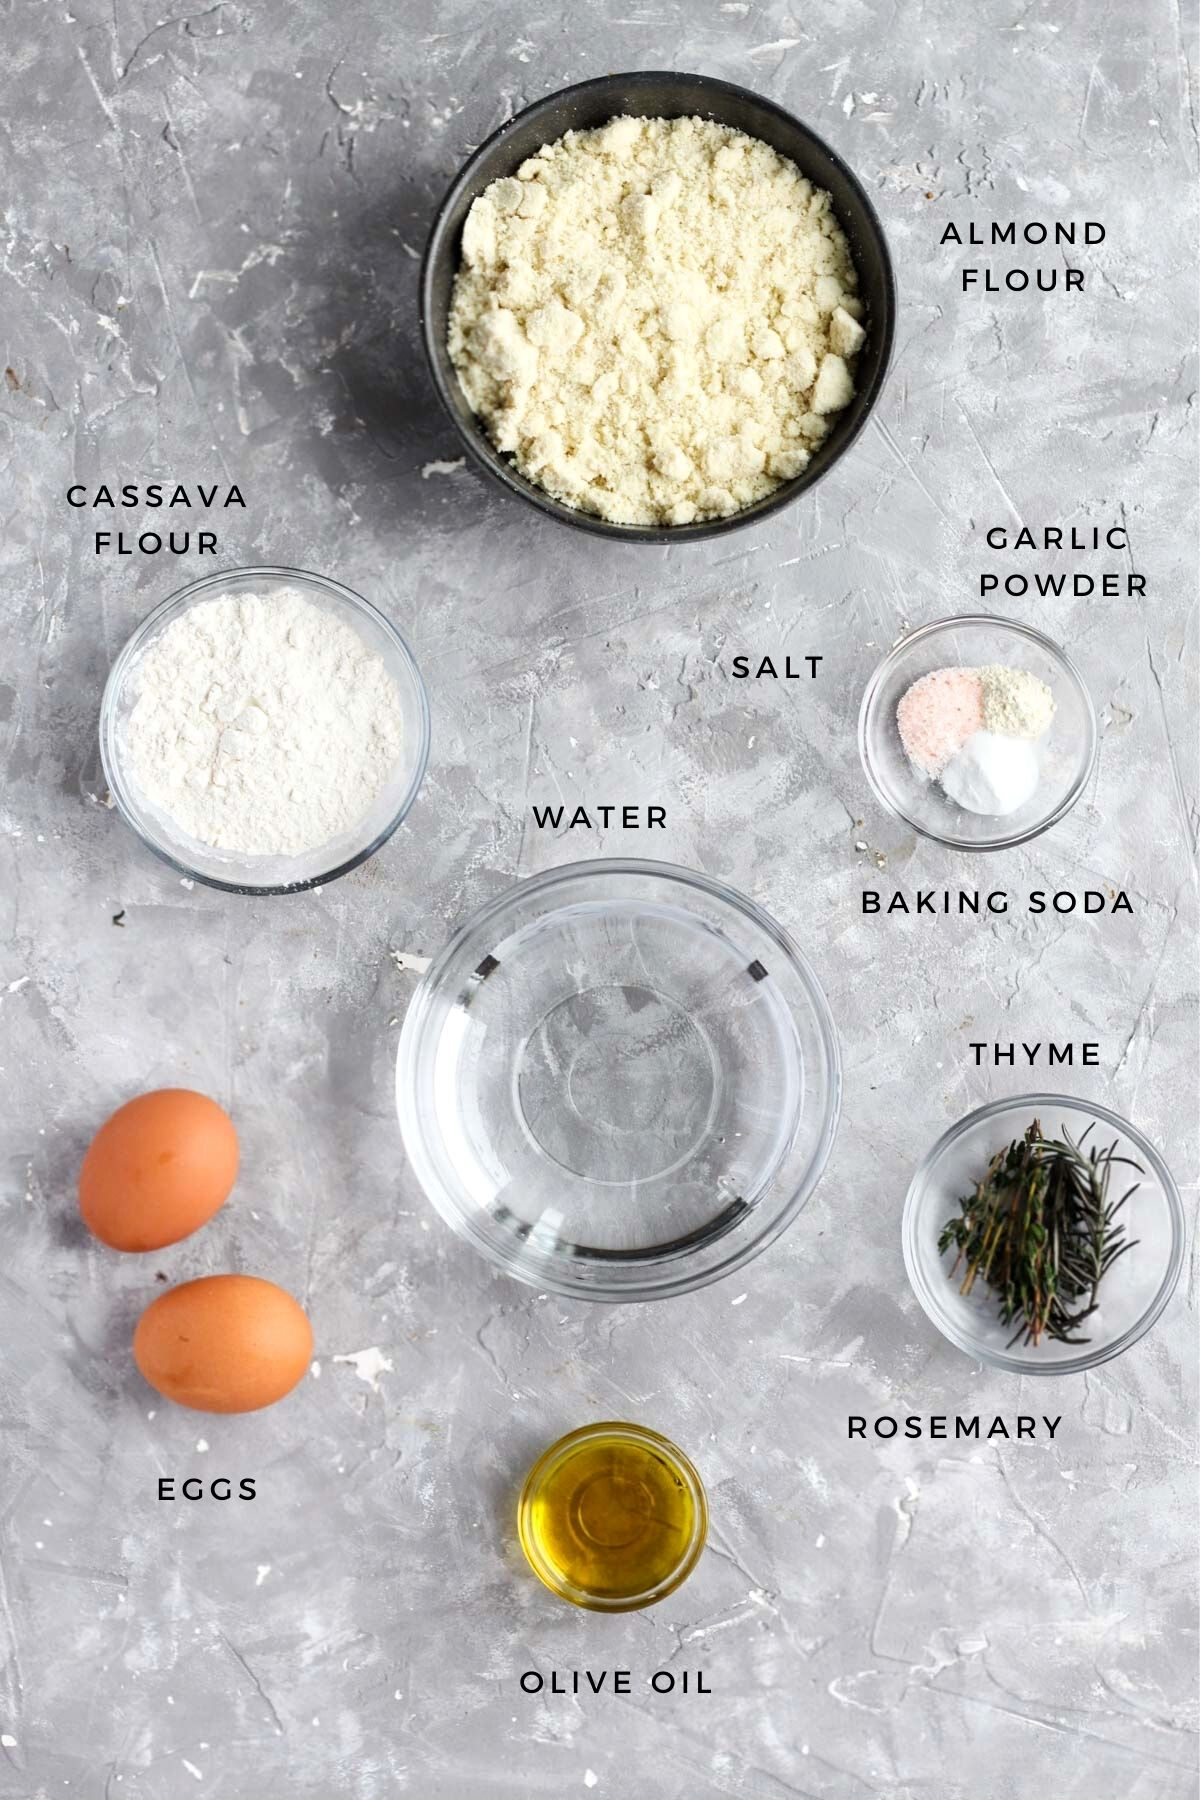 Overhead shot of ingredients for this recipe measured out.